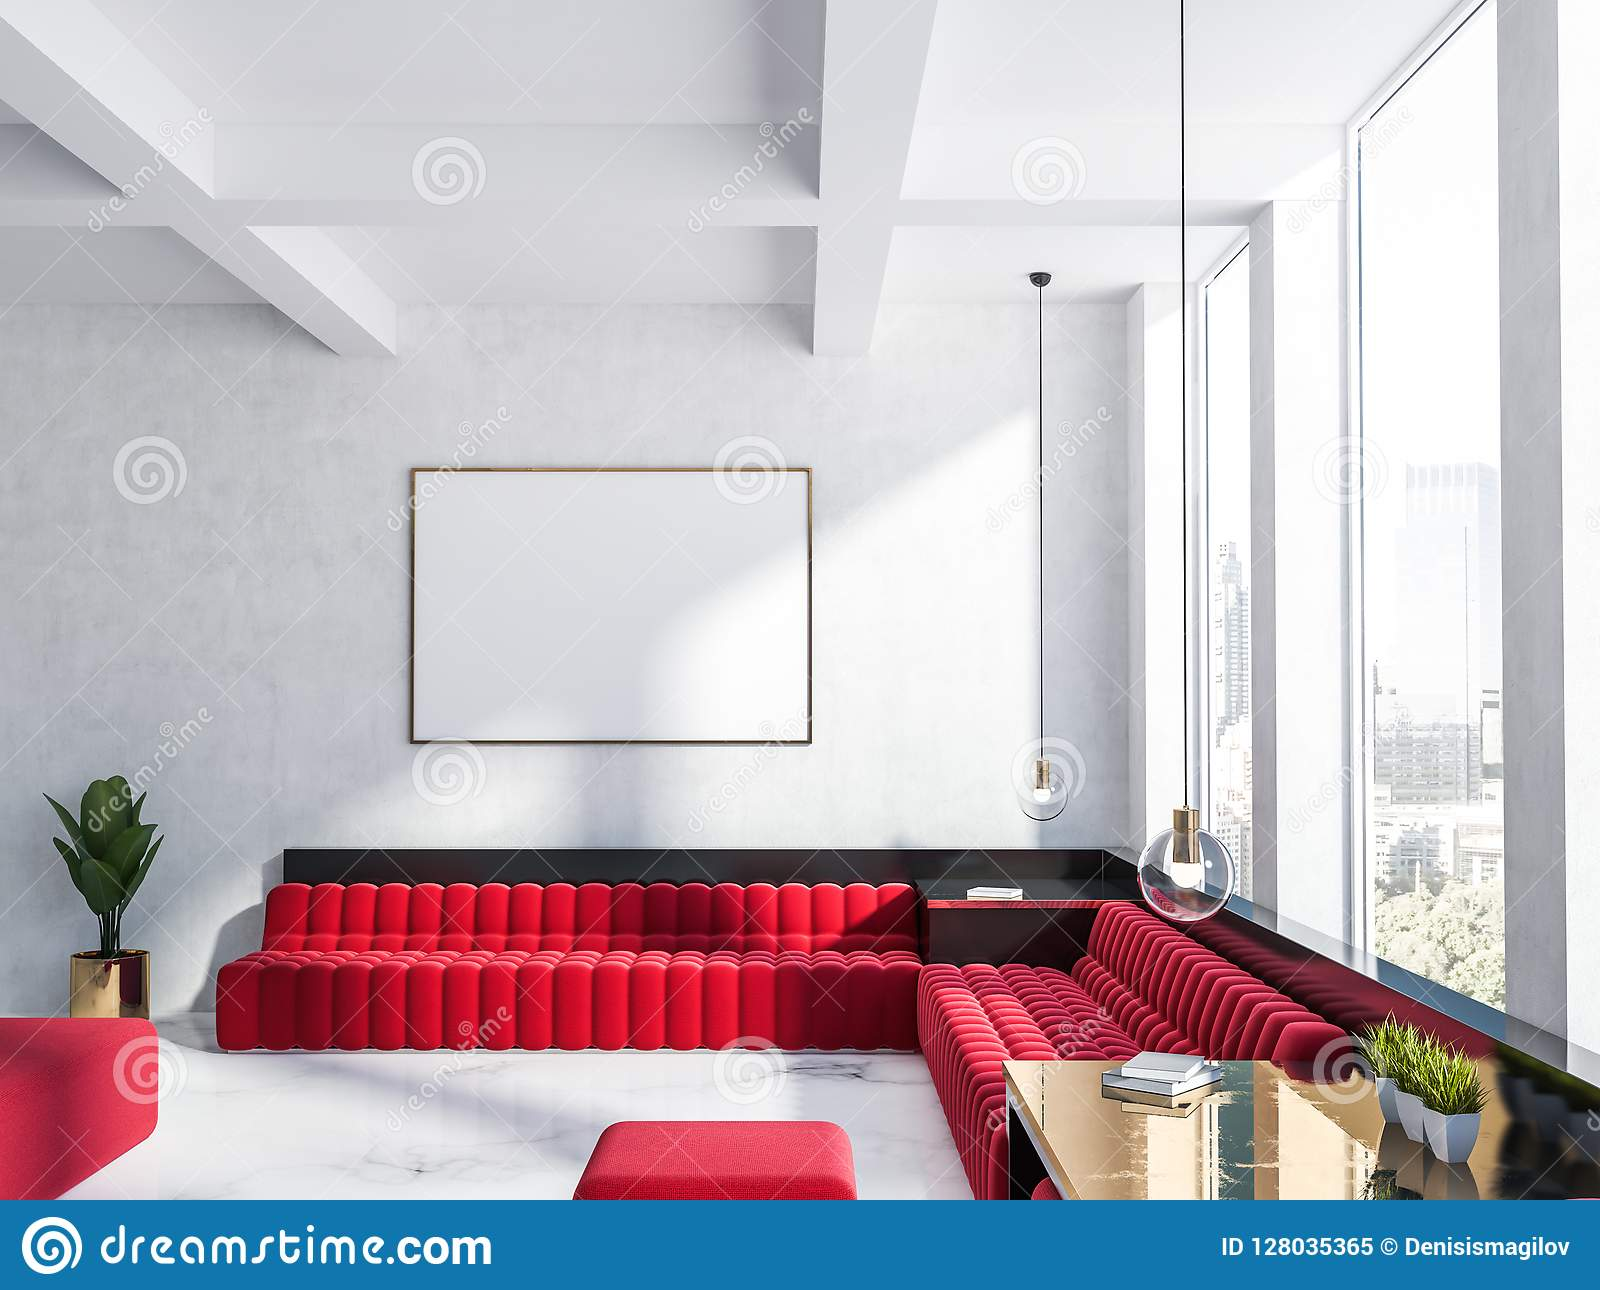 red sofa white living room bohemian decorating ideas and poster stock illustration luxury interior with walls marble floor big windows sofas horizontal mock up frame on the wall 3d rendering